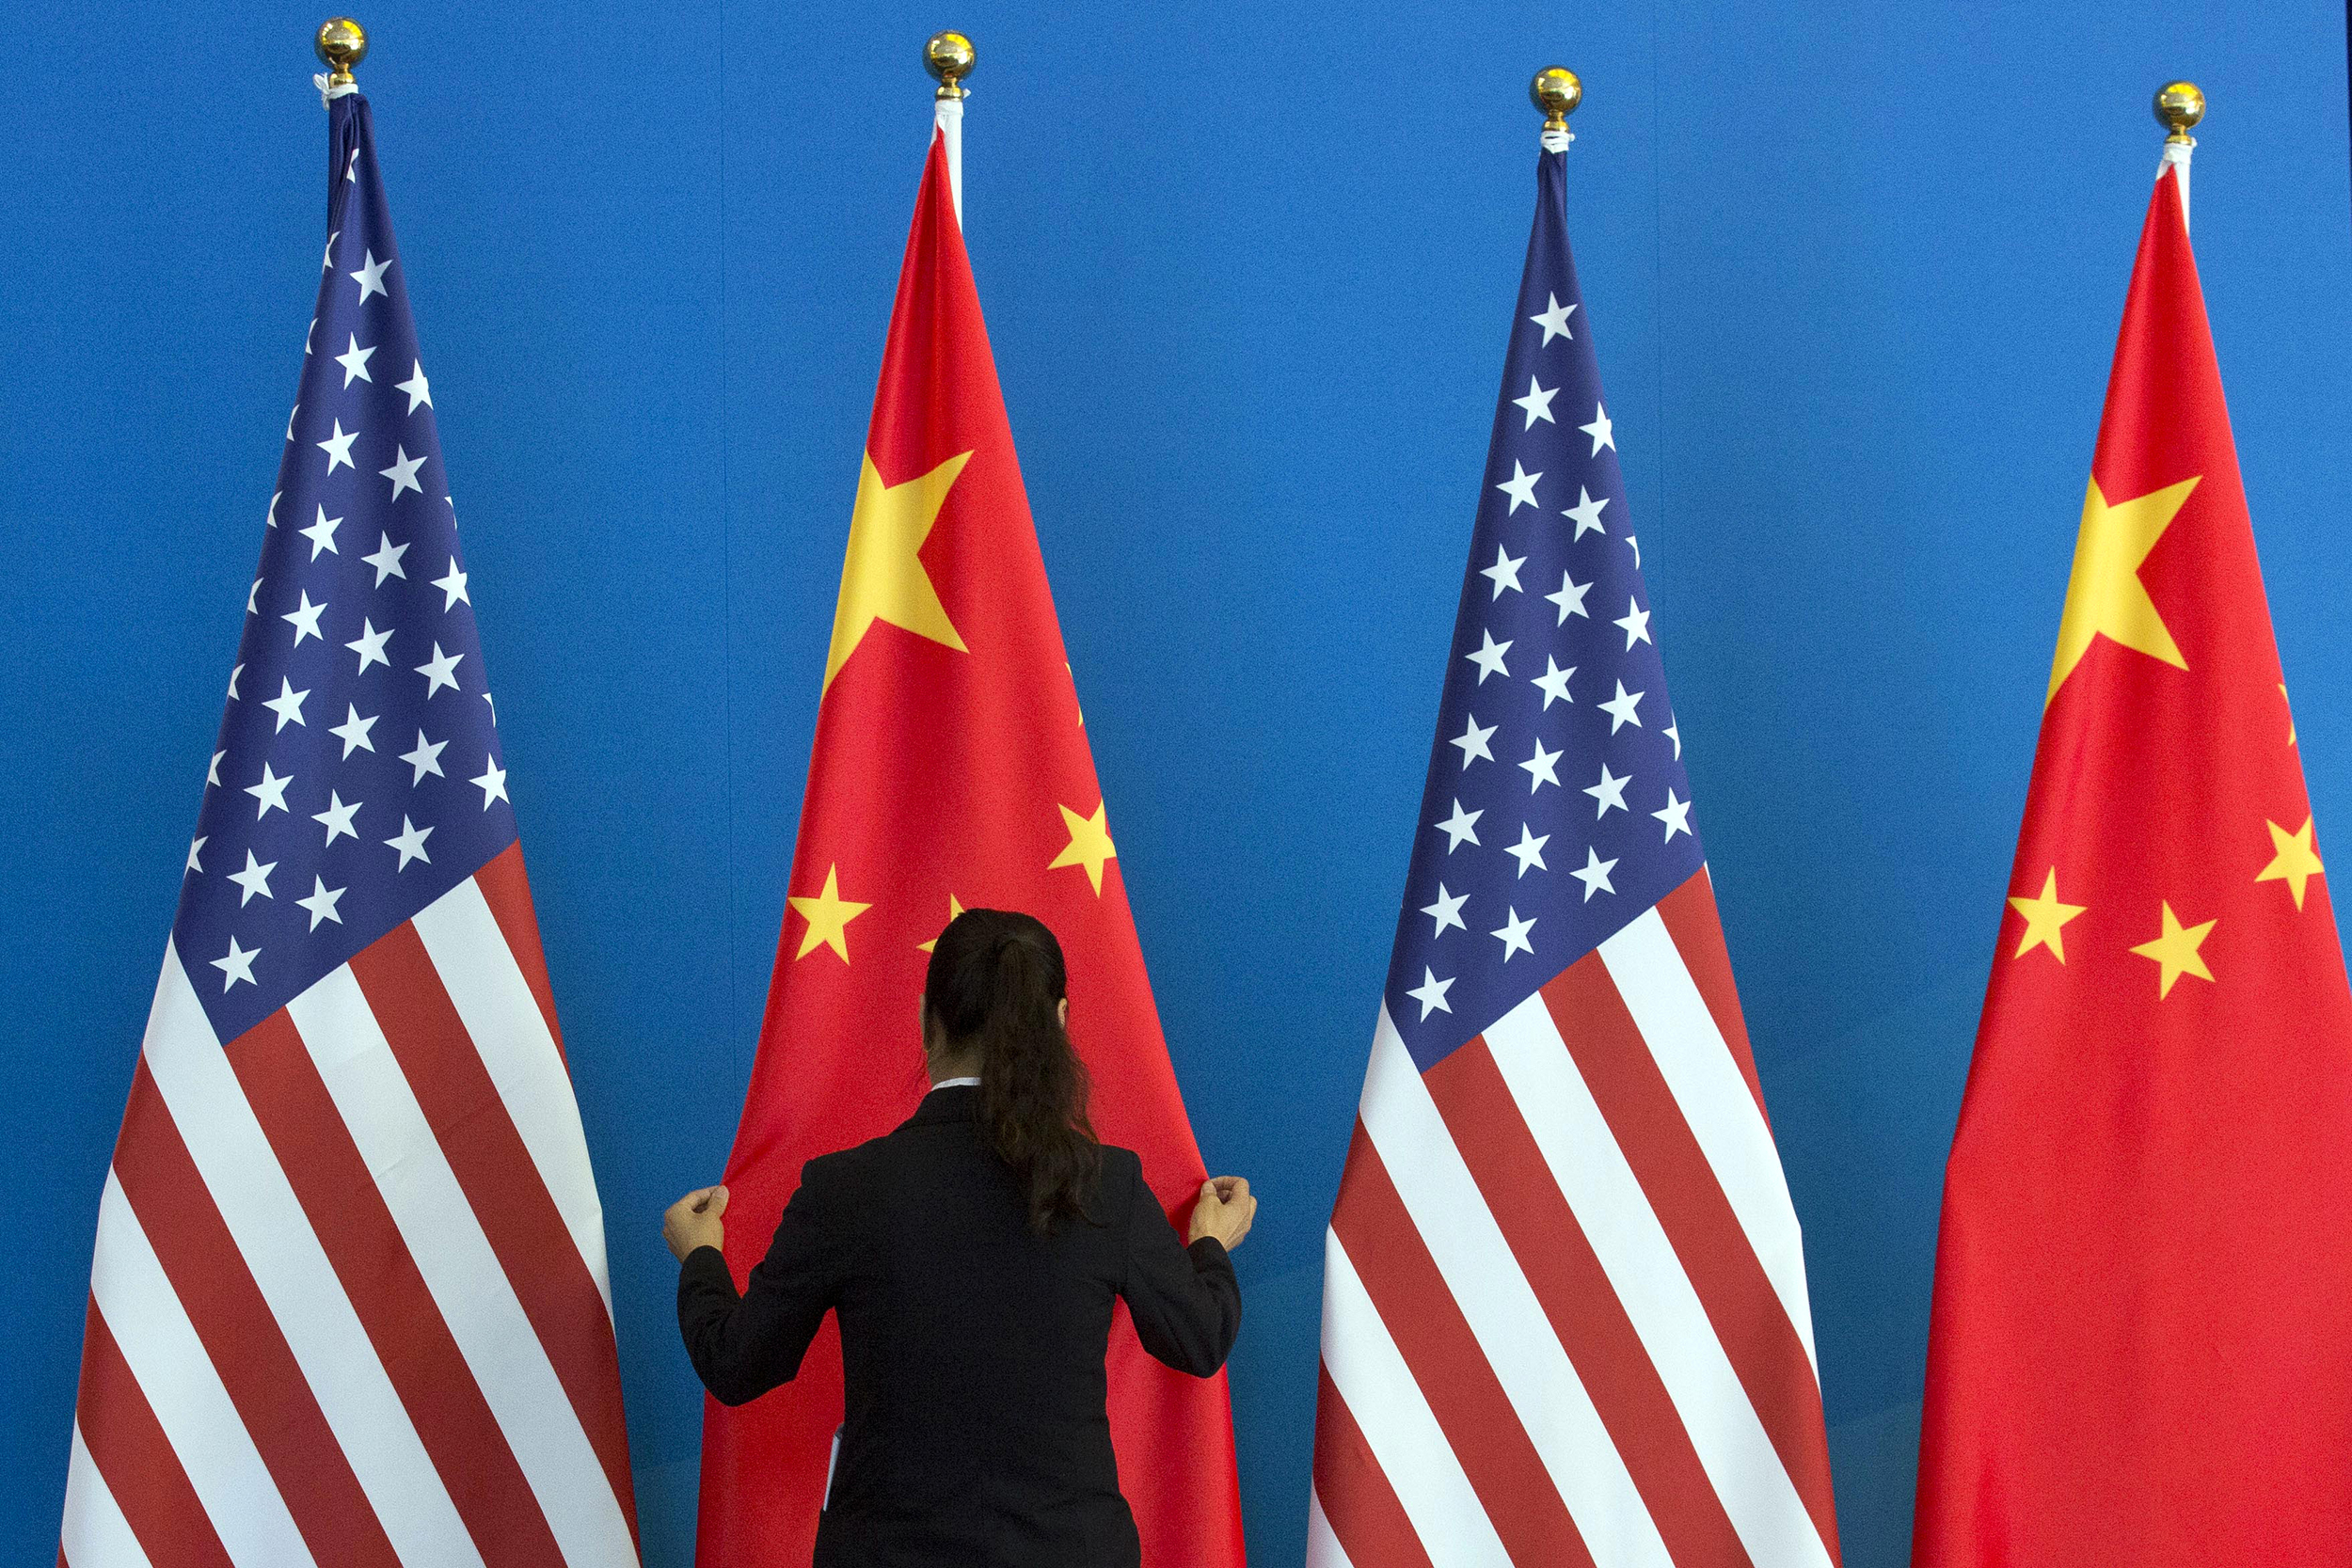 Image: A woman adjusts the Chinese national flag near U.S. national flags